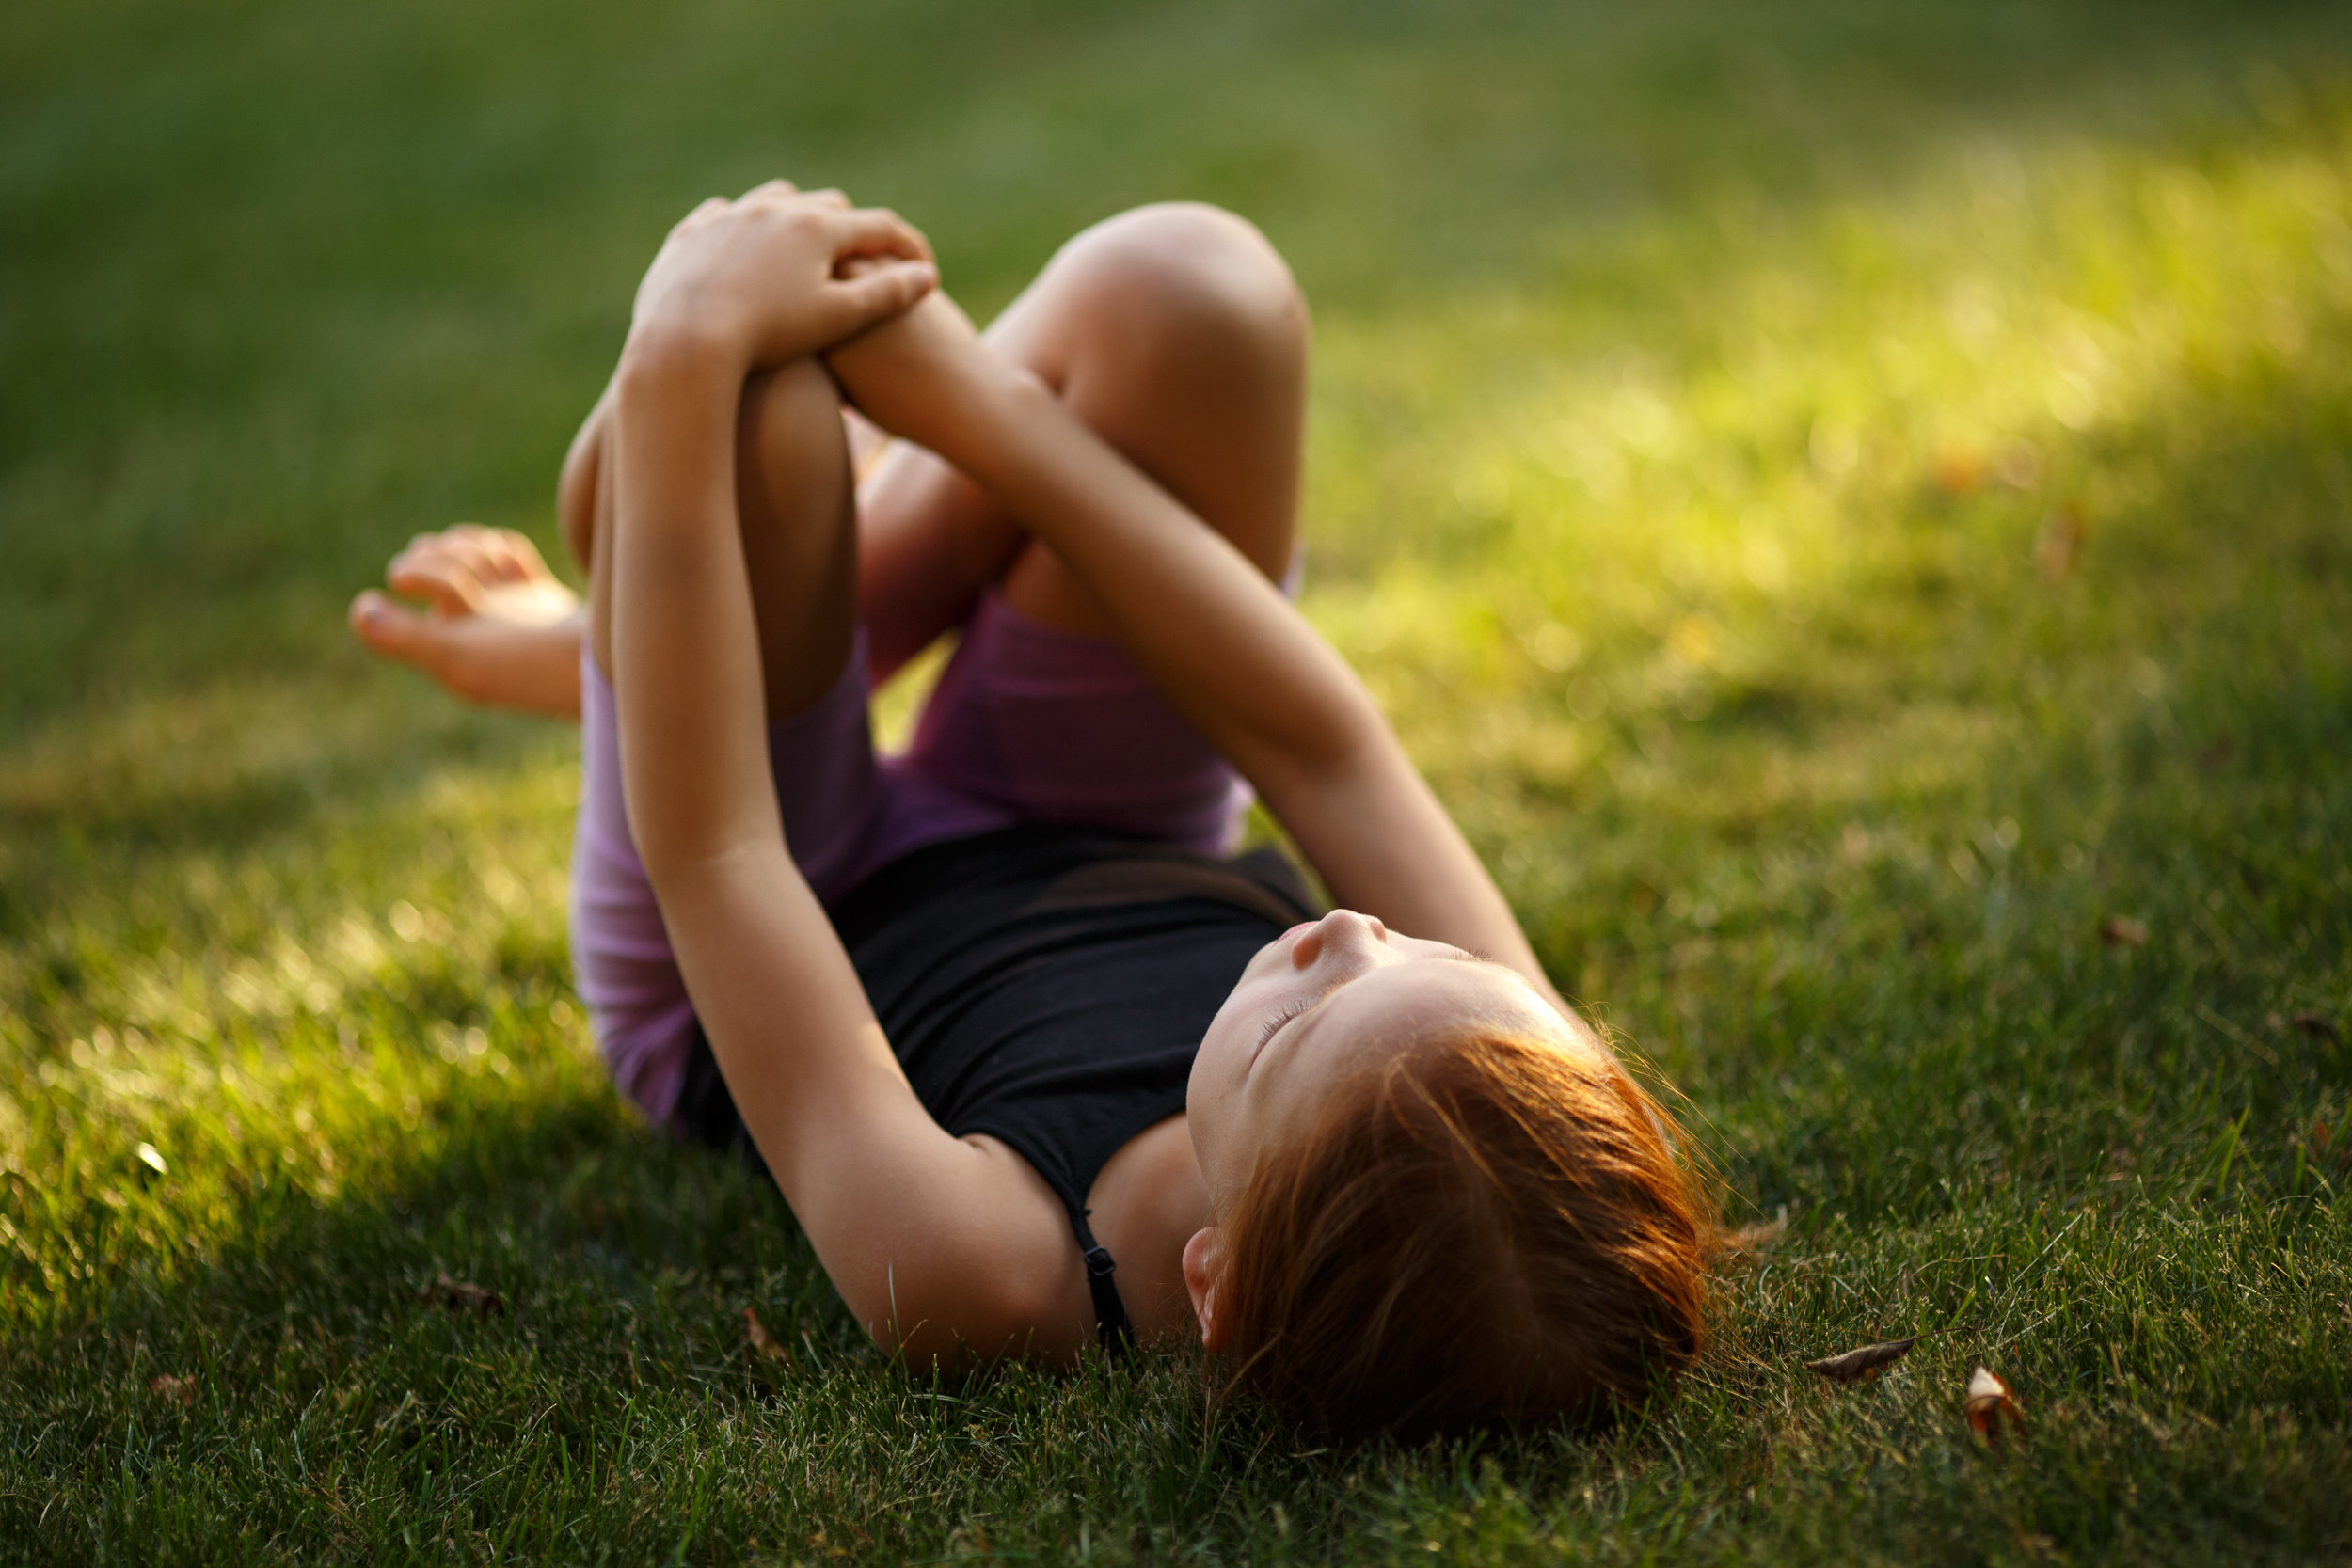 Young person lying on their back in the grass with knees up, gazing at the sky.